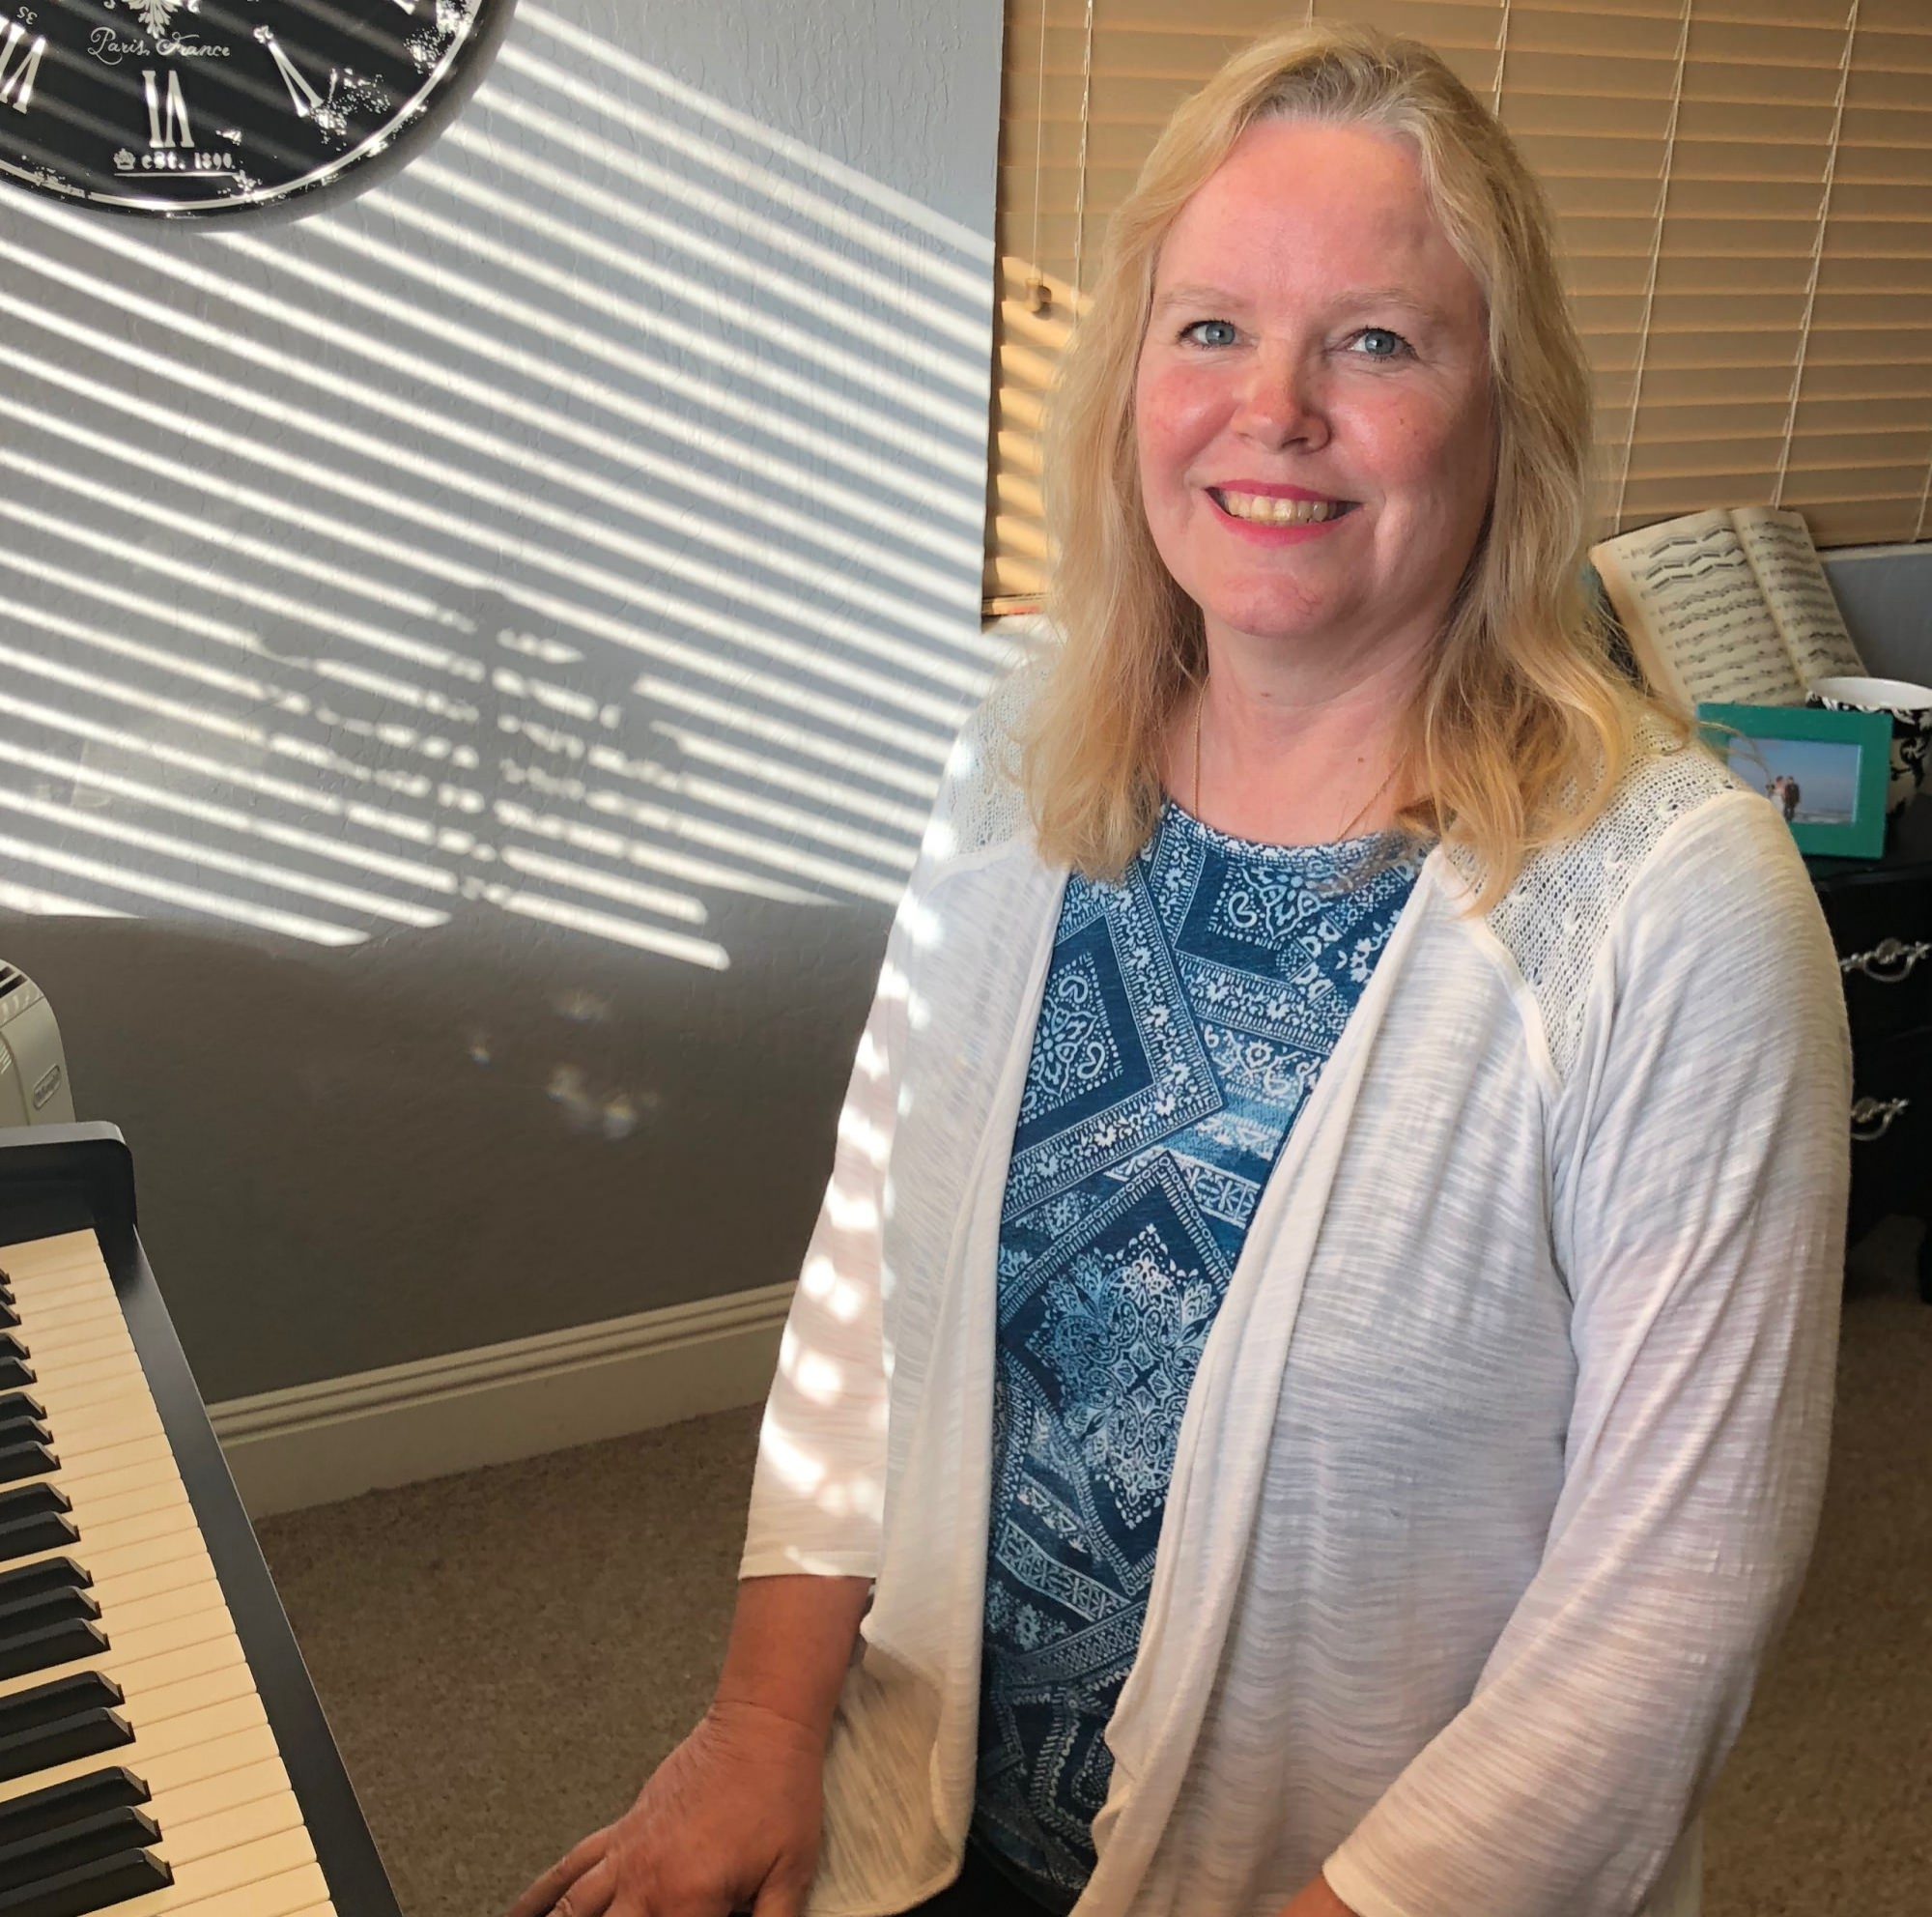 Debbie Dougherty, Certified Simply Music© teacher - Debbie Dougherty first began to play the piano in her early teens, for her own relaxation and enjoyment.After many years as a dedicated caregiver, Debbie heard about Simply Music© and loved the idea and format of the program. Debbie decided to change the direction of her career and begin teaching piano so that she could share her love of this beautiful instrument with others.Debbie acquired compassion and patience in her years as a caregiver, and this comes through in her teaching. It is important to her that each of her students play the piano for their own enjoyment as well as the enjoyment of those around them.Working with families at Roseville Piano Studio has fulfilled Debbie's desire to spark a love of the piano in others. Debbie is excited to share her love of music with each new student in her classes.